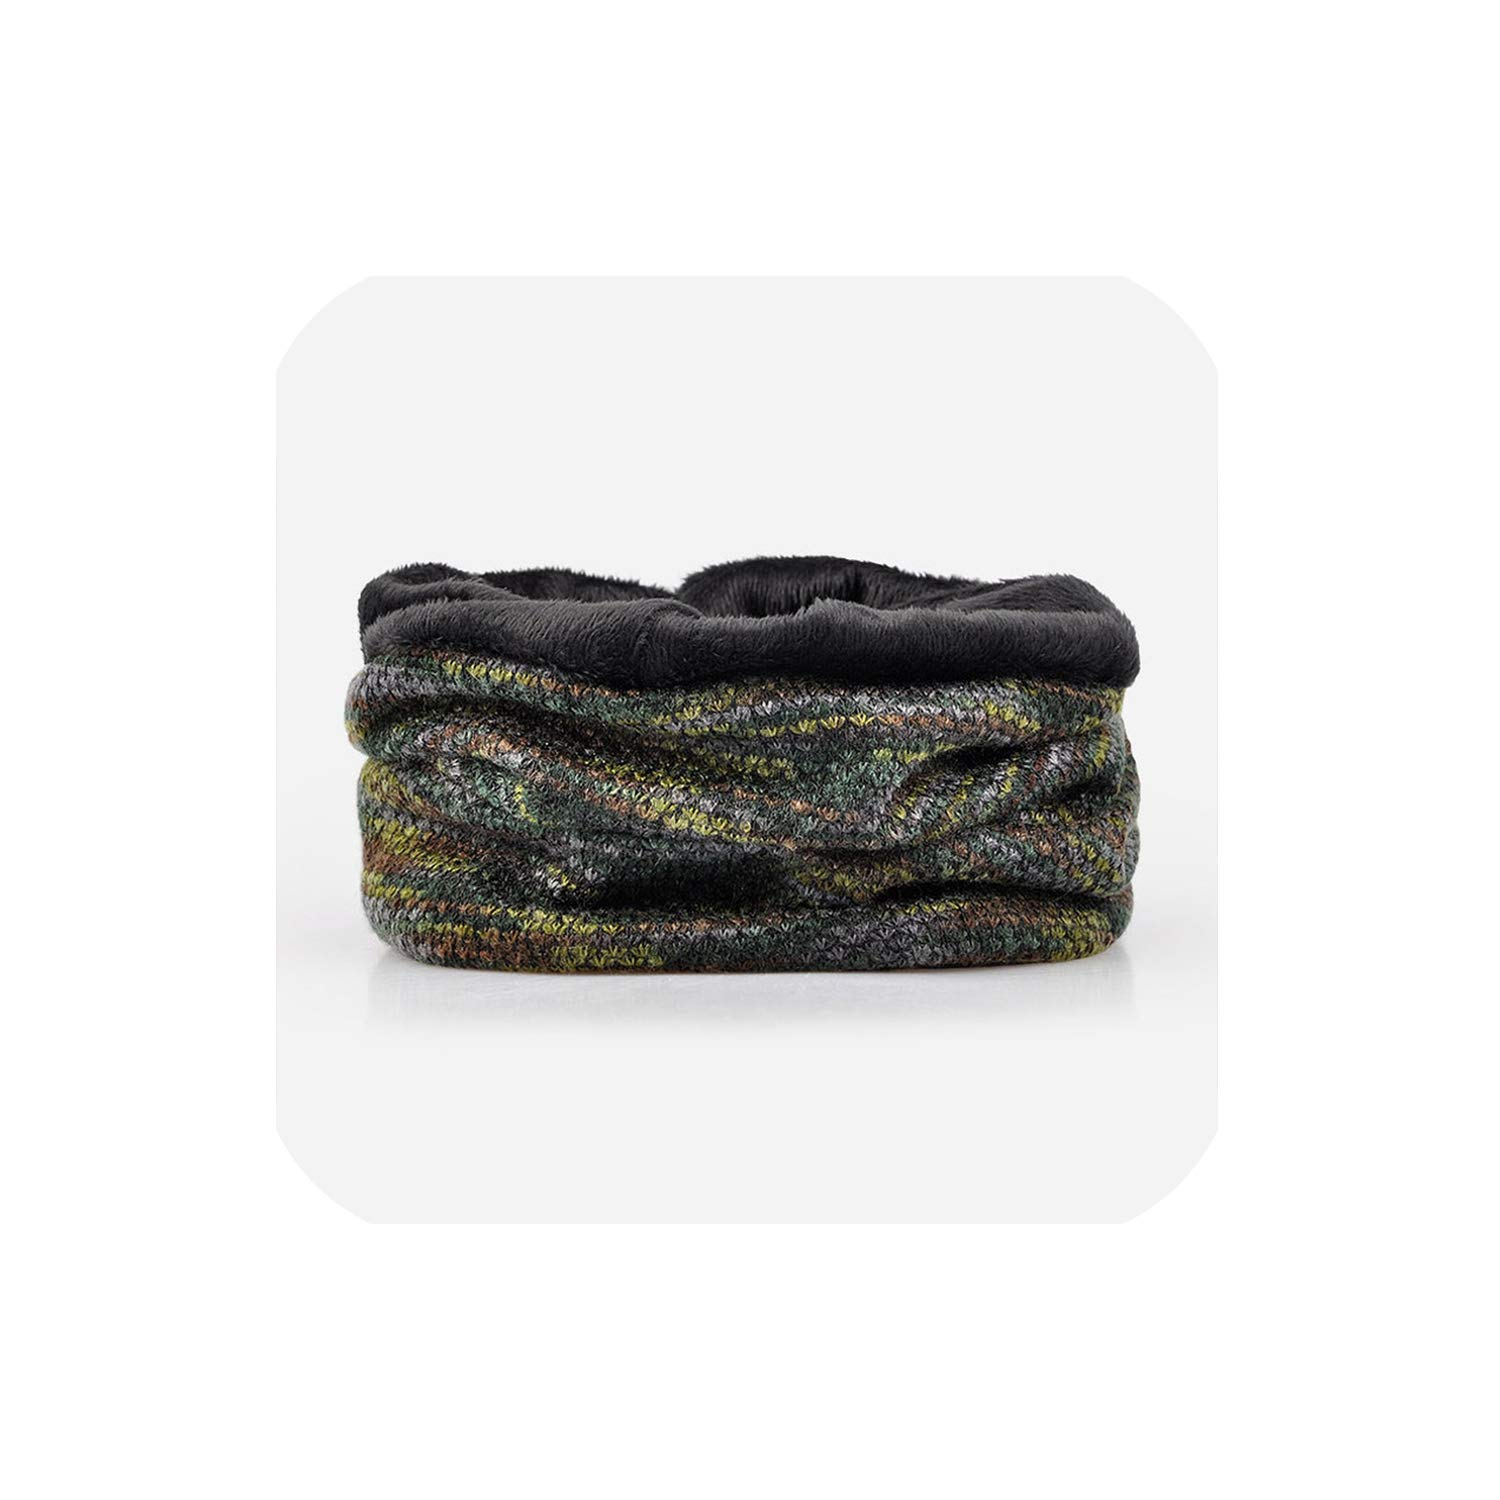 Beanies Collar Scarf Women or Mens Hats Warm with Velvet Inside